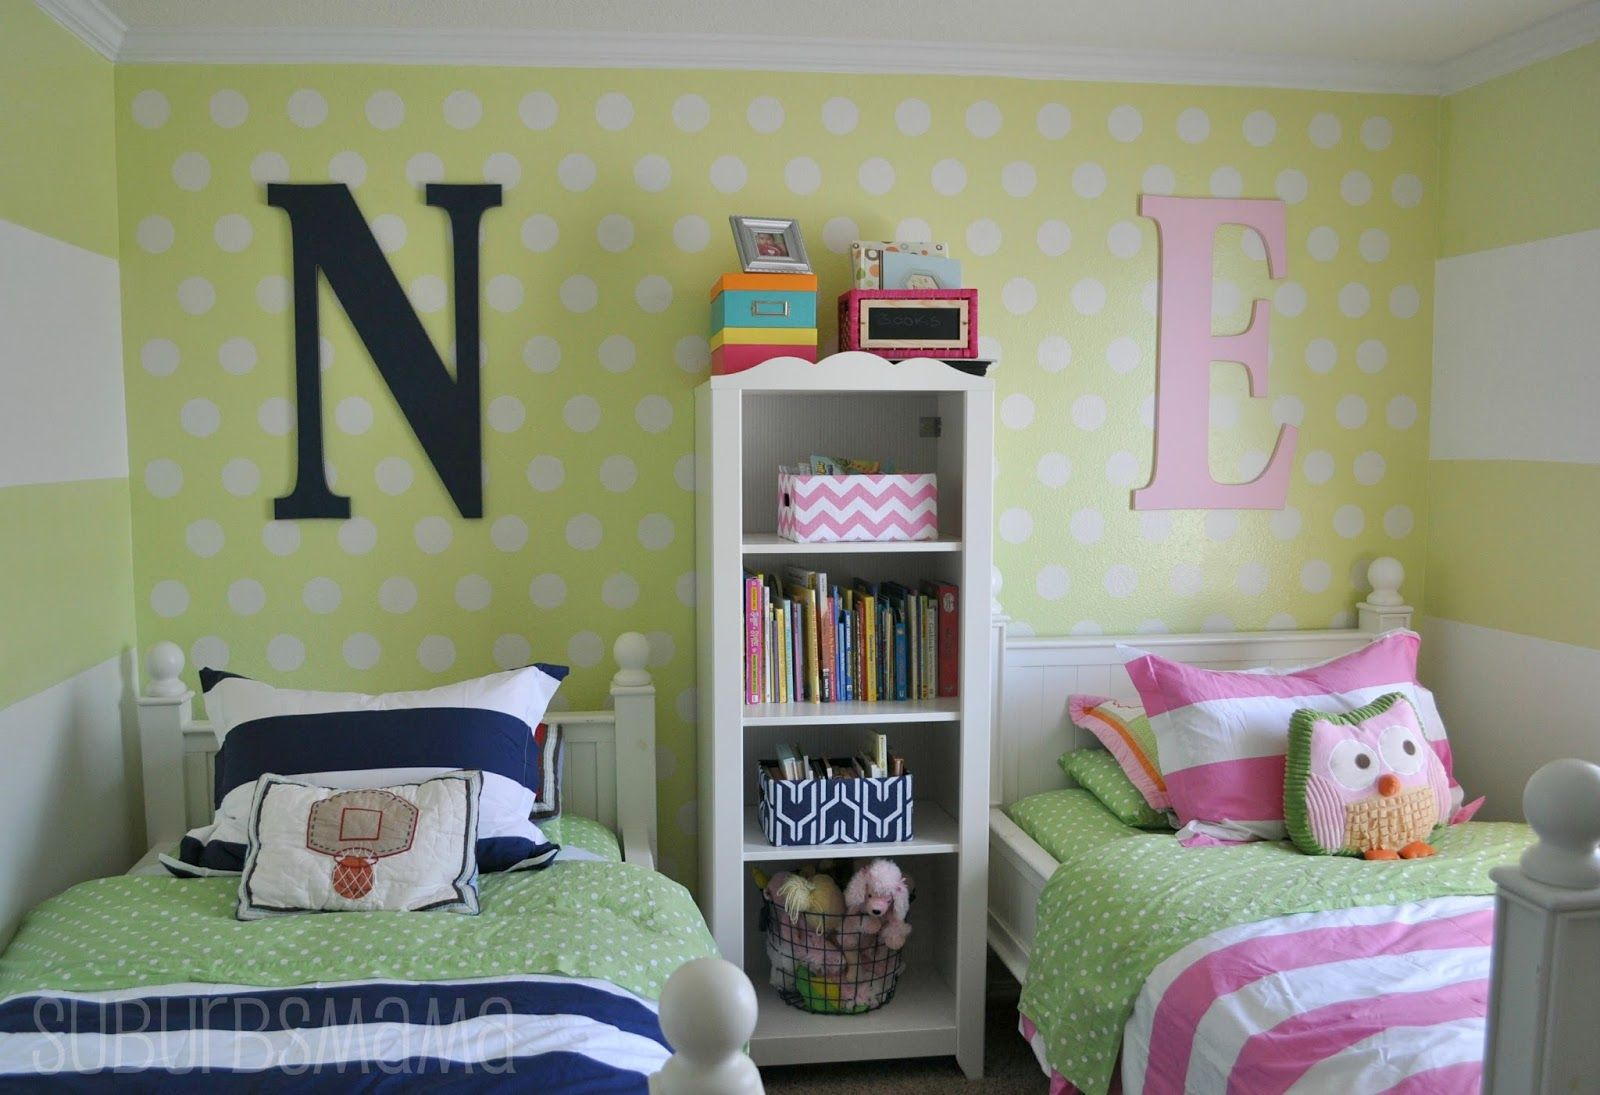 Kids bedrooms for two - 16 Gorgeous Boy Girl Room Ideas Beautiful Boy And Girl Shared Bedroom With Two Single Size Beds Navy And Pink Stripes Pillows Blankets Plus Basketball